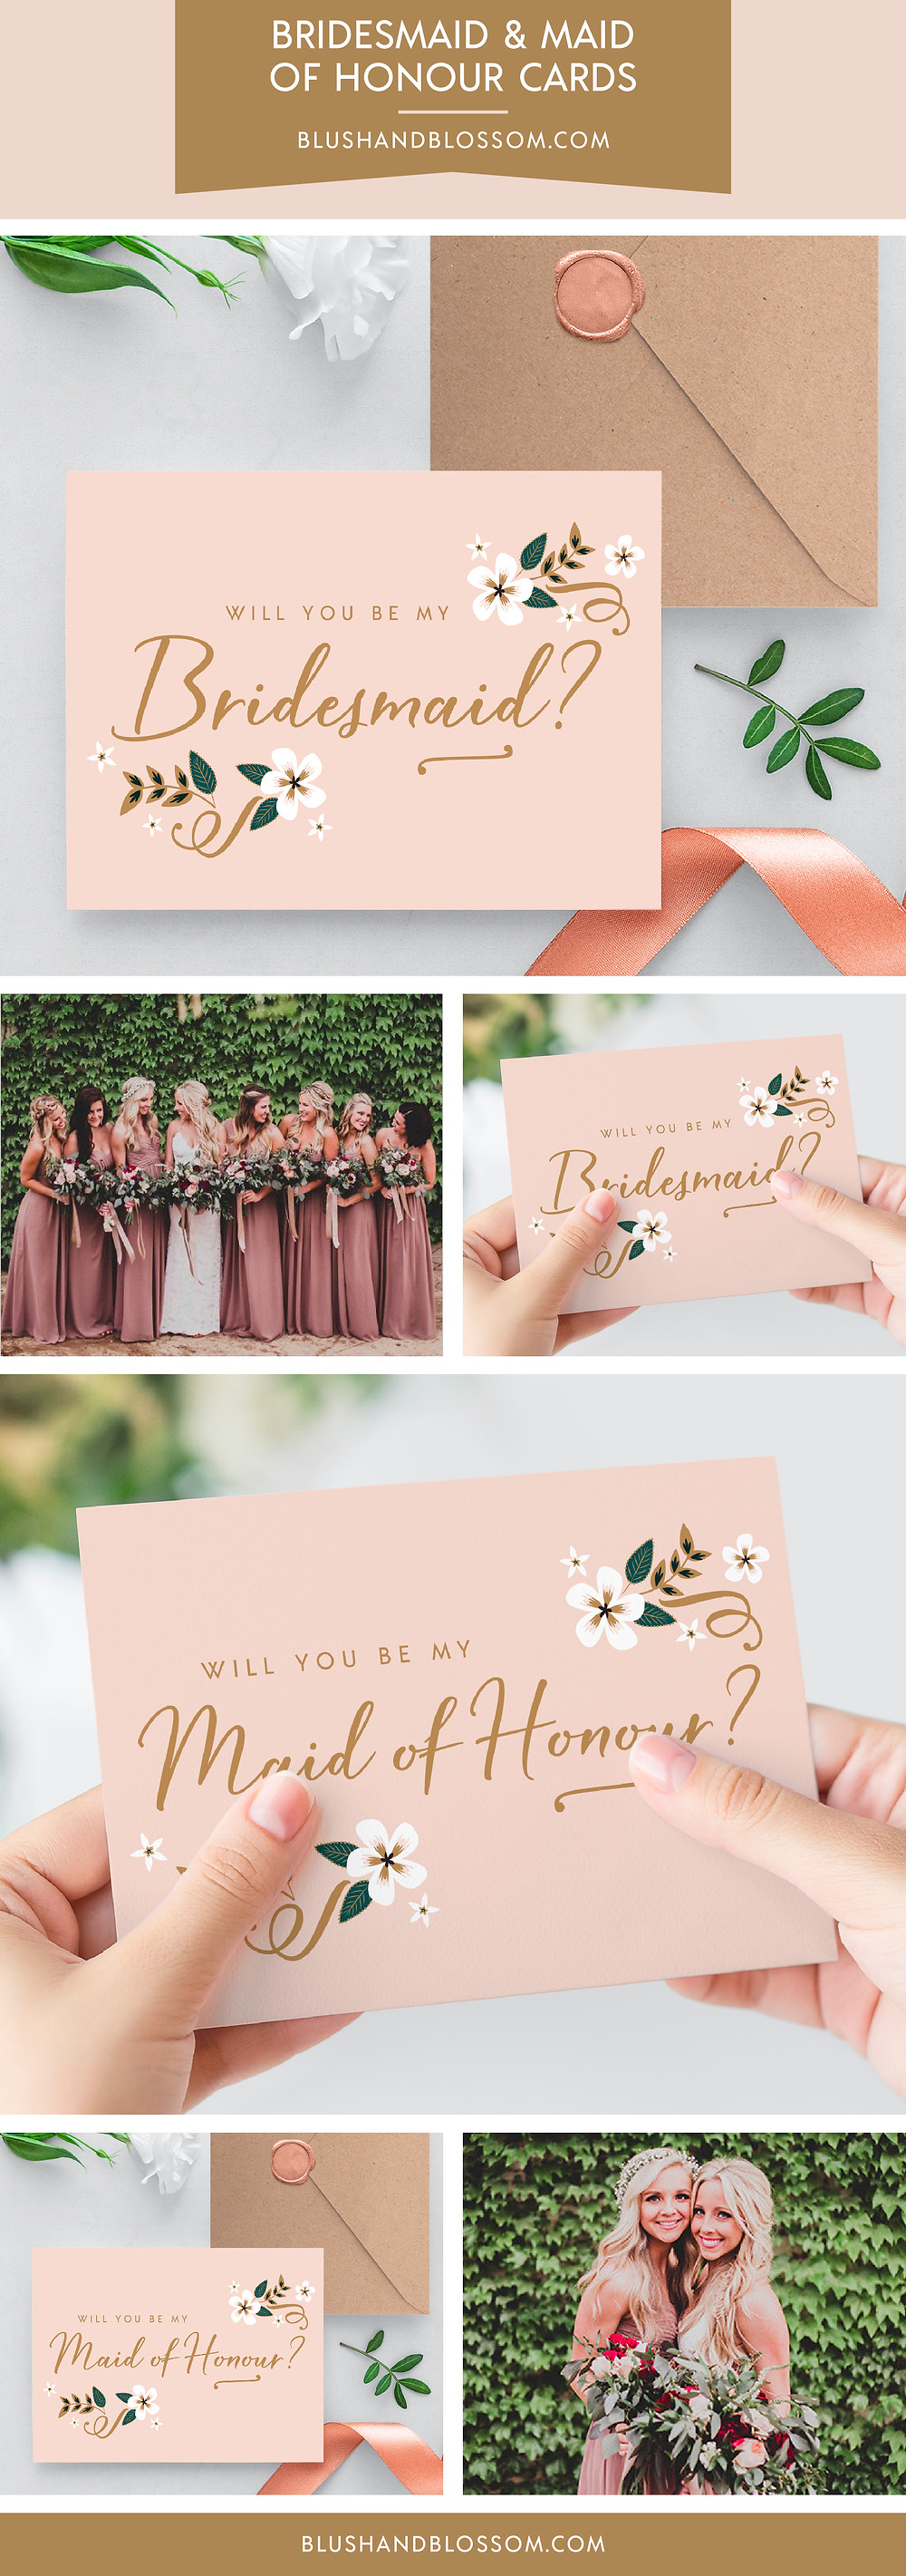 Will you be my bridesmaid and maid of honour cards